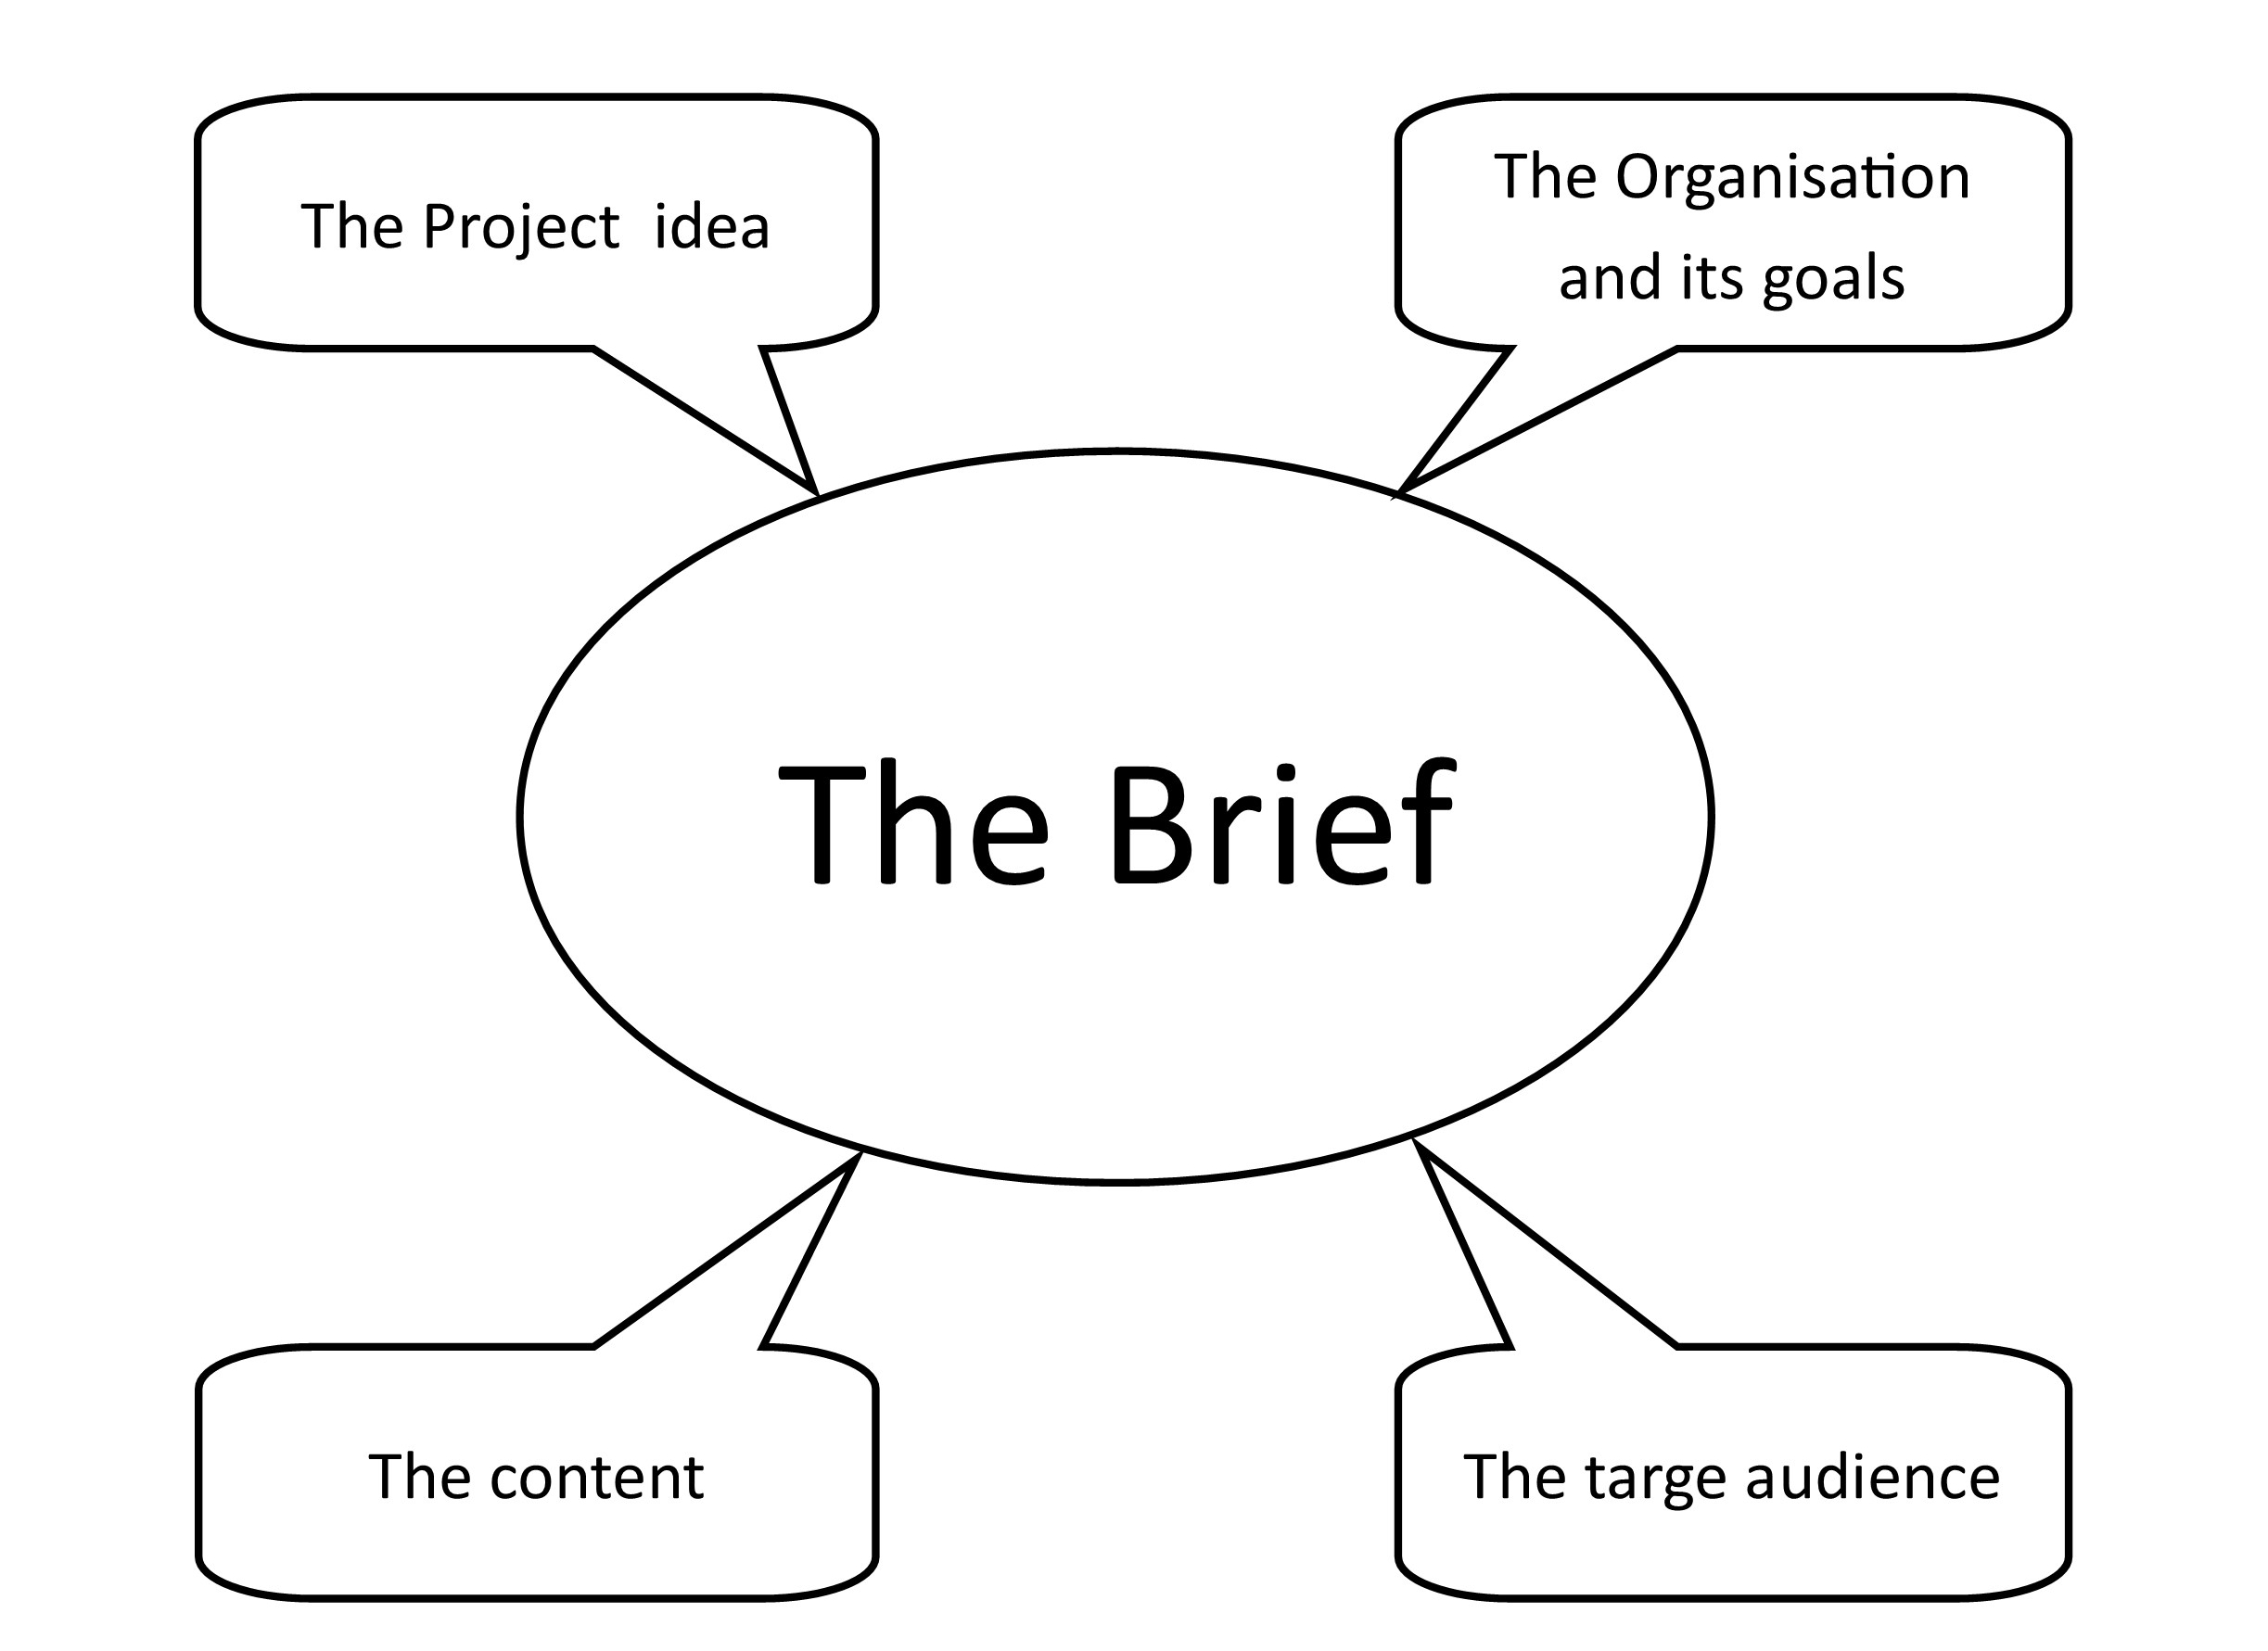 The brief lays the foundations of the project.